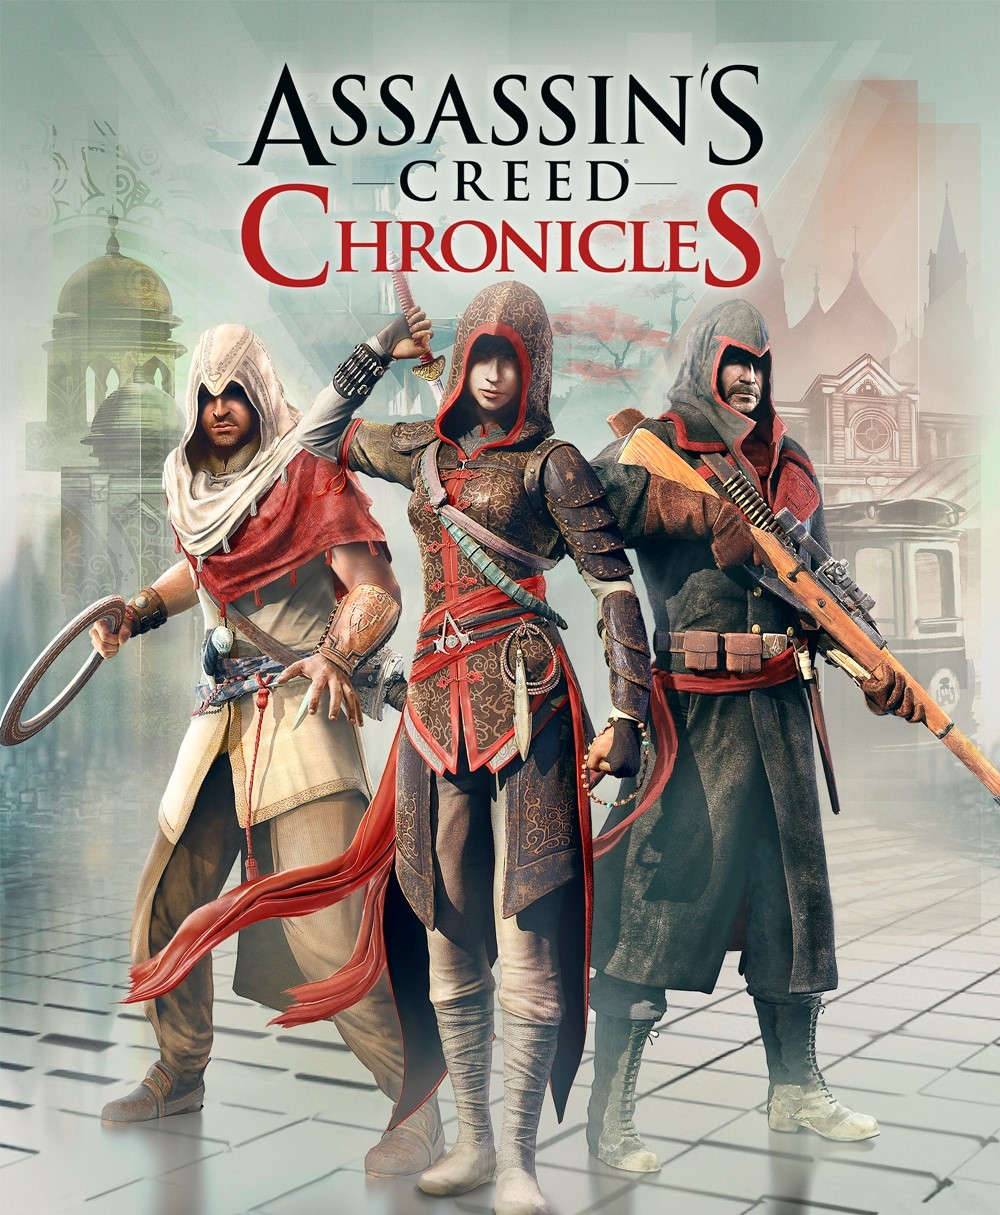 Assassin's Creed Chronicles ZZZGamesBR